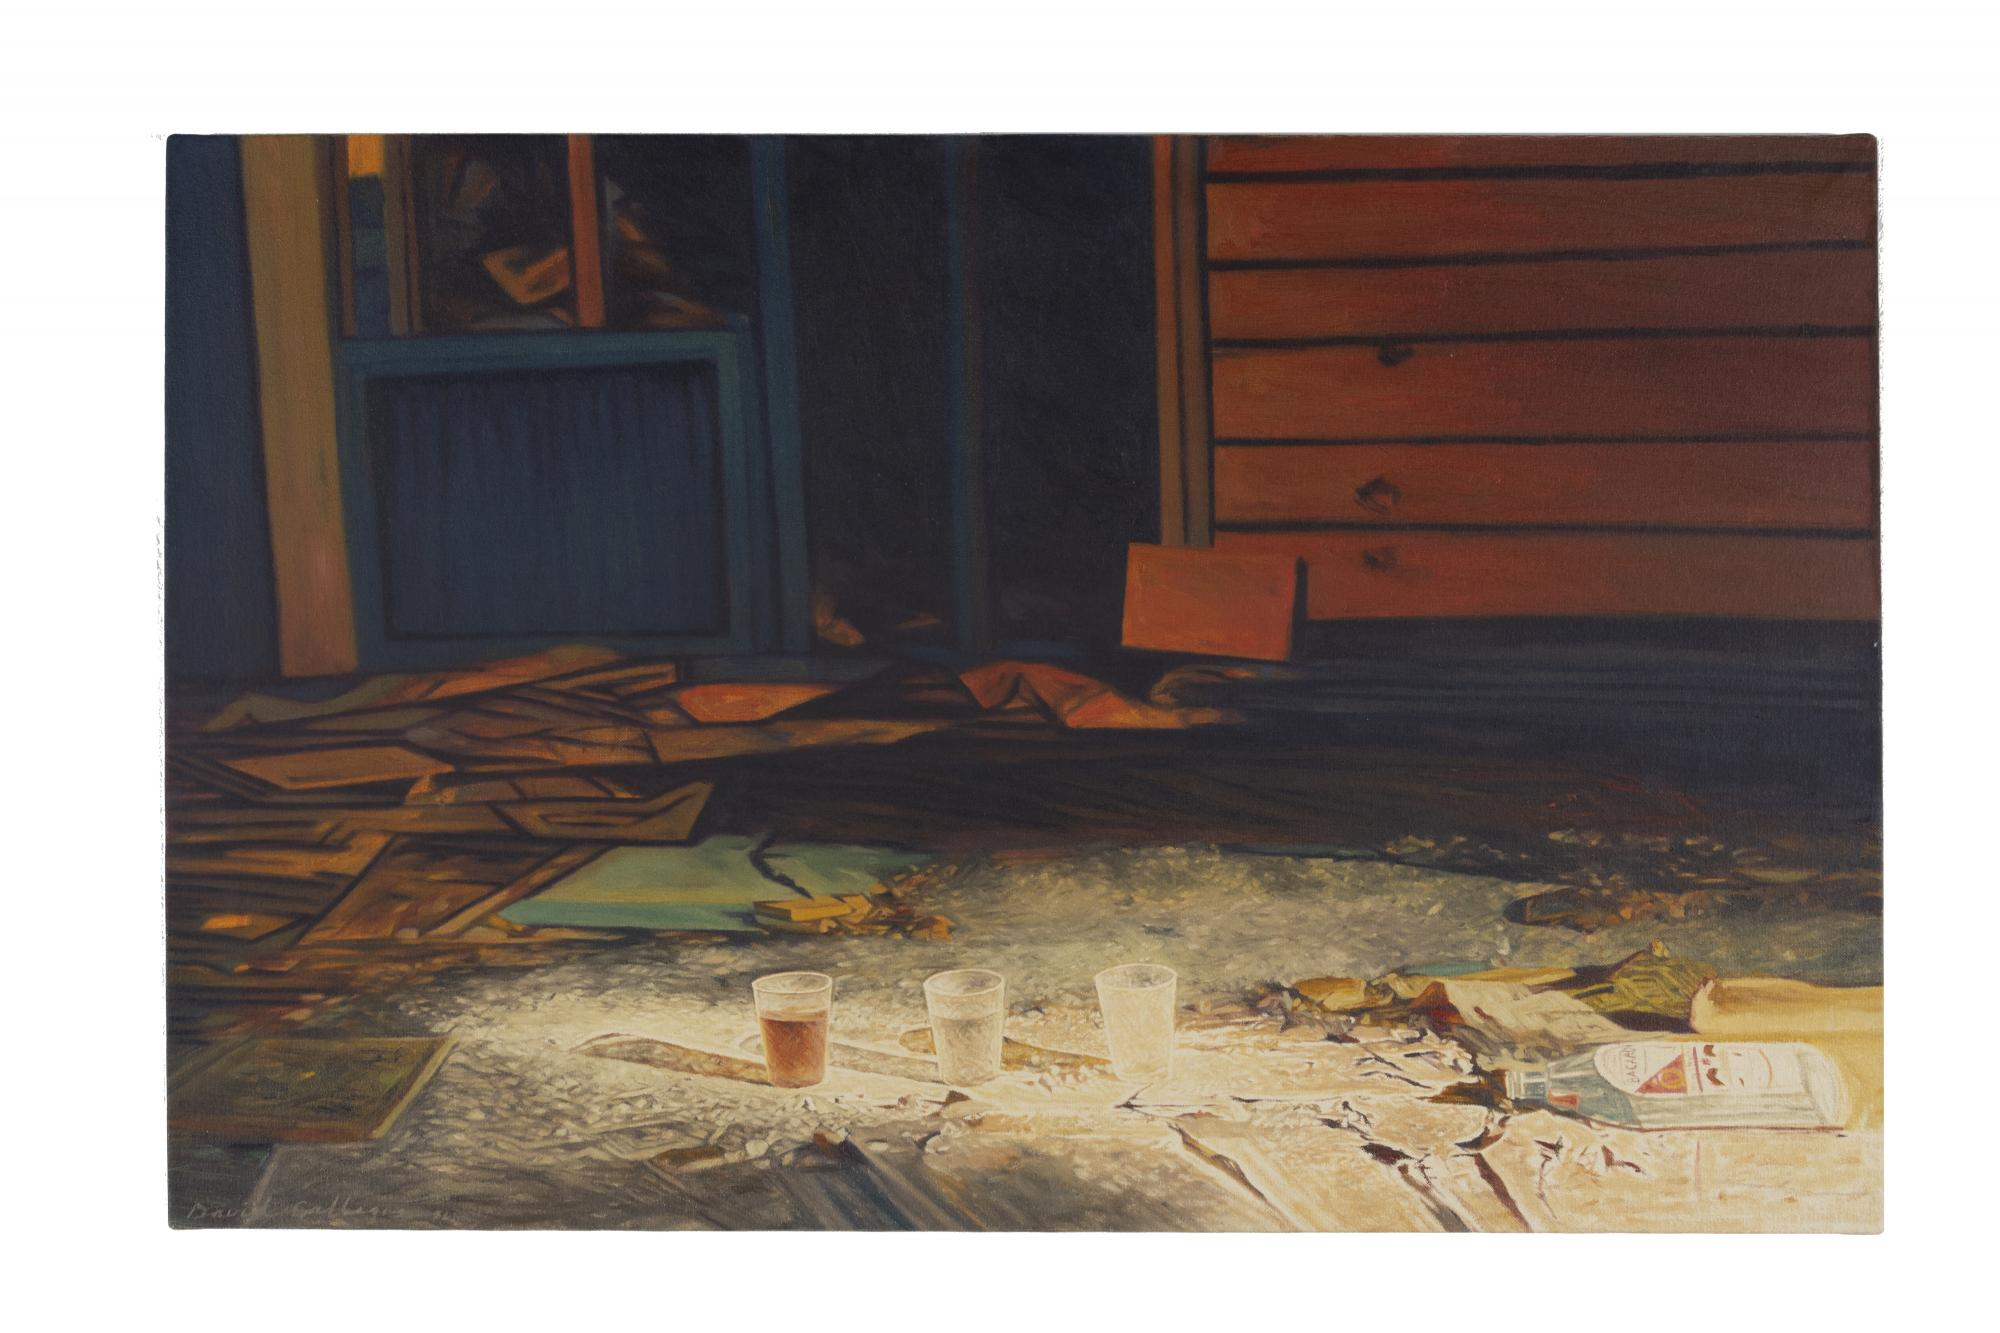 David Maes Gallegos, (b. 1954) United States, Bacardi, 1986, Oil on canvas, Gift of the Artist  [1.2015.10]